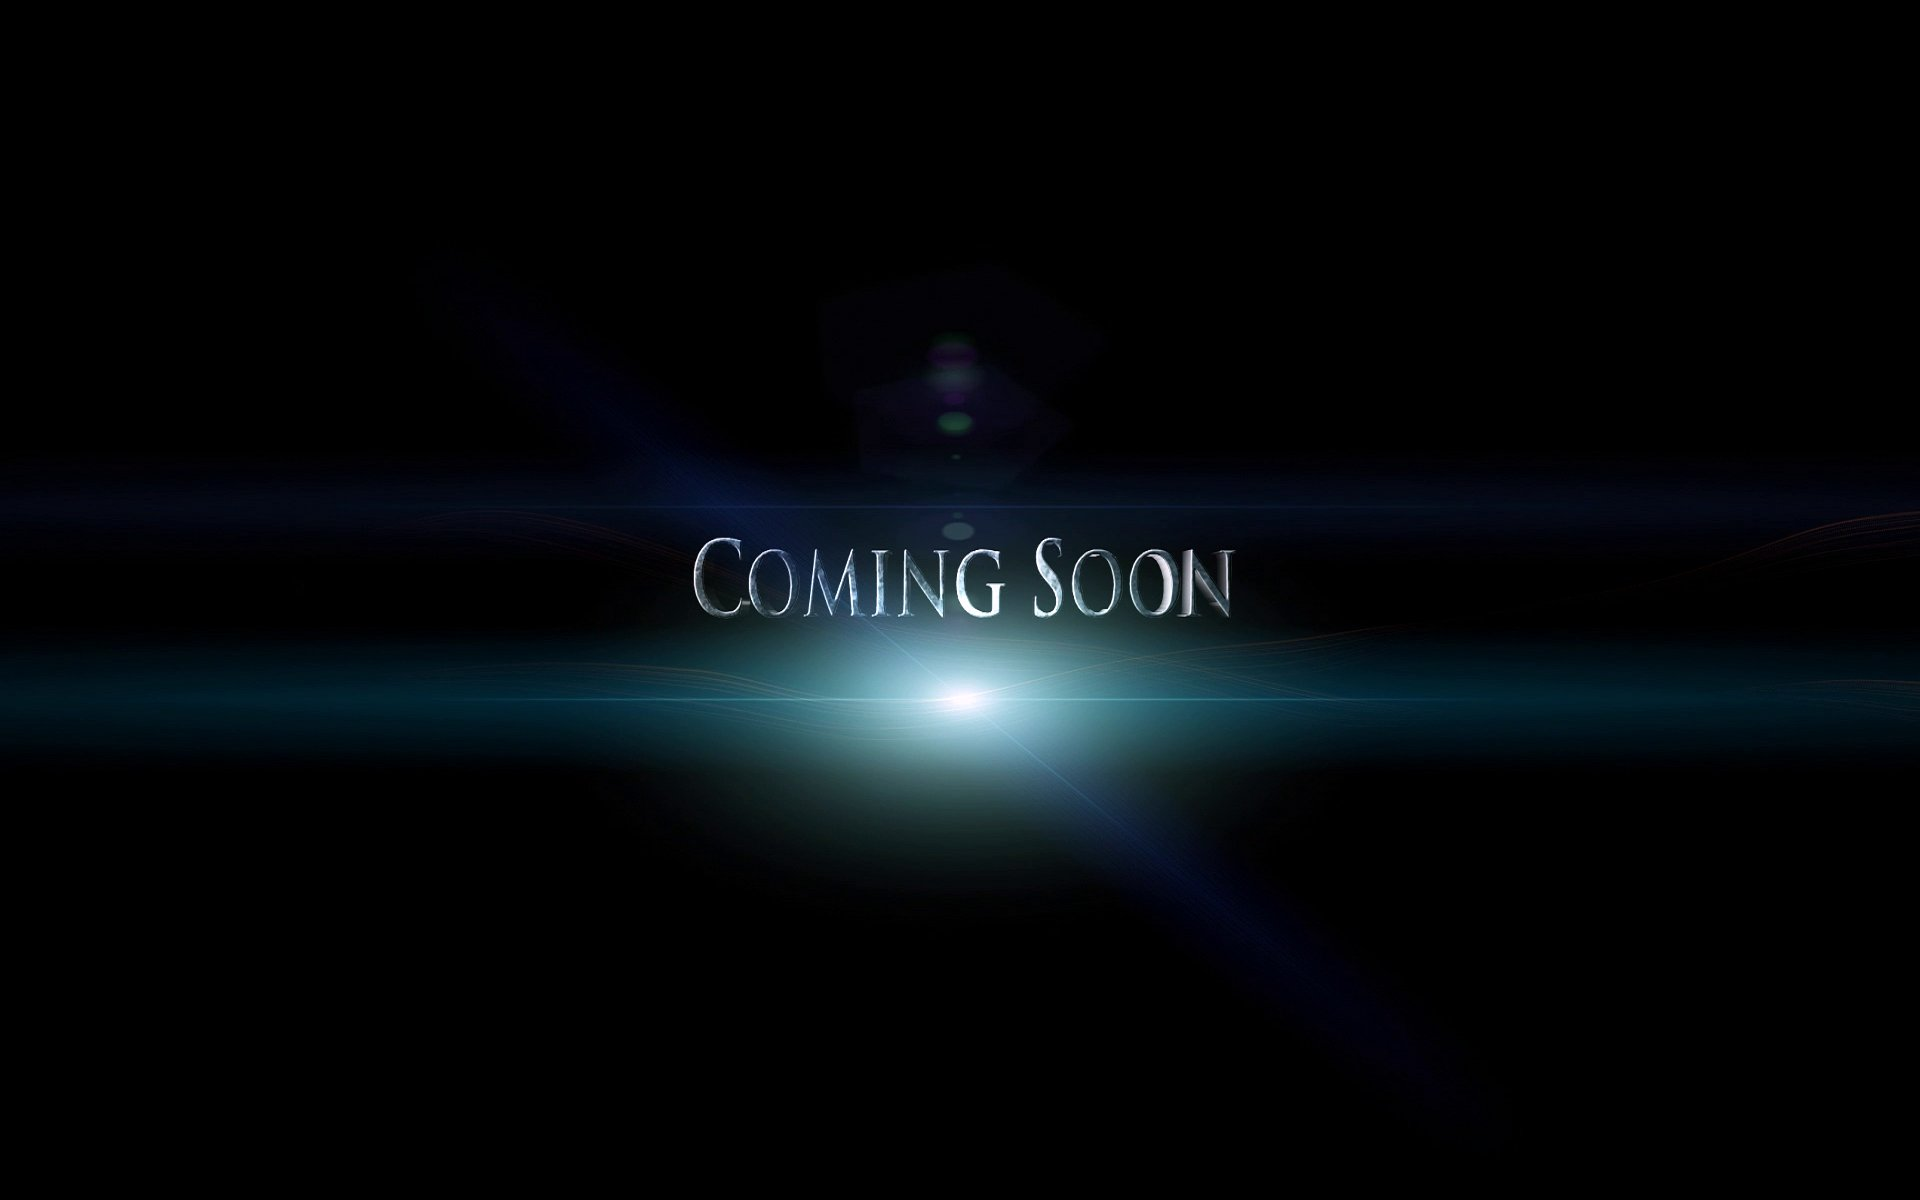 Coming Soon Background Powerpoint Backgrounds For Free Powerpoint Templates